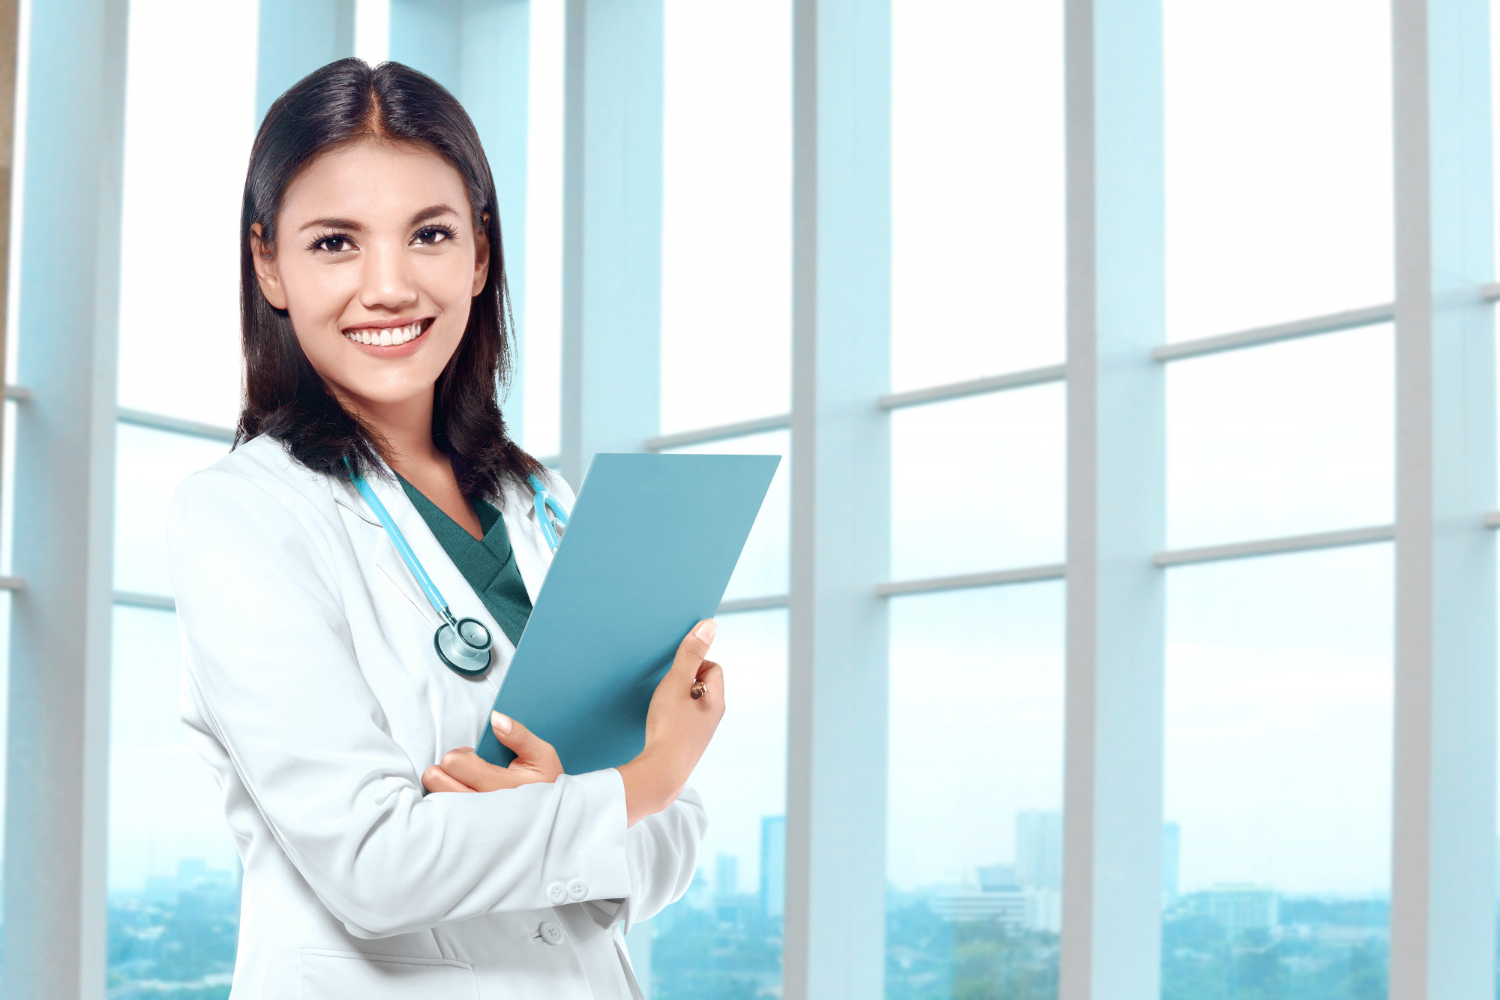 General Practitioner GP vs Specialist Doctor What's the Difference